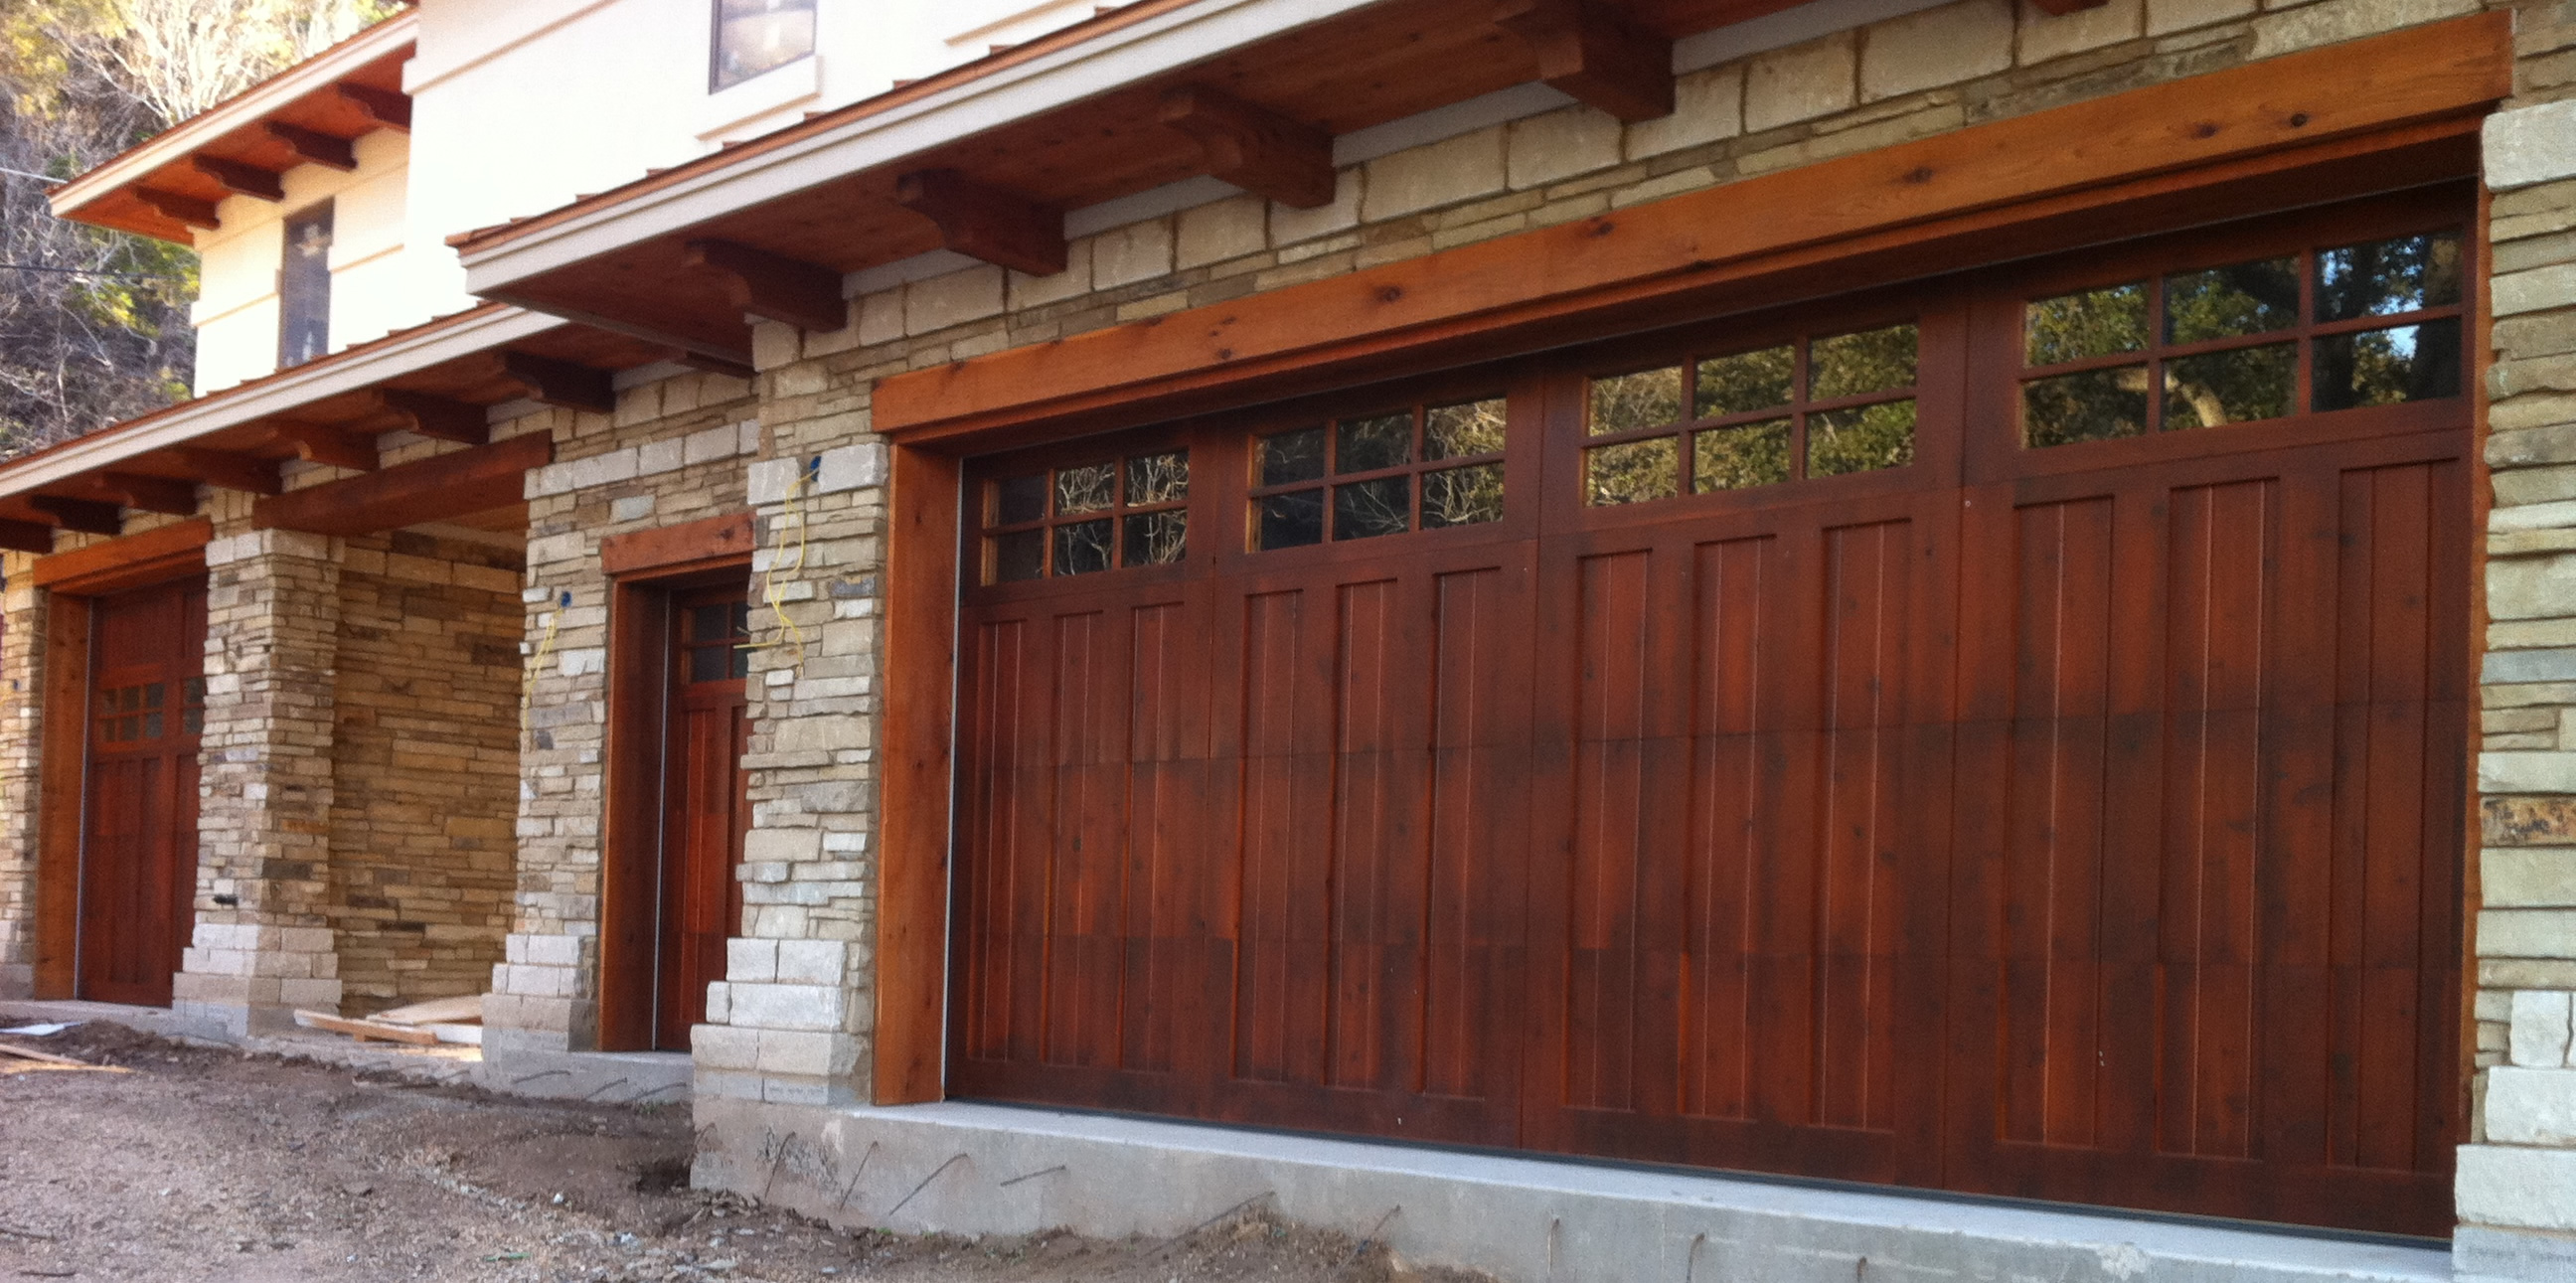 Wood garage doors repair and install toronto and gta for Cedar wood garage doors price